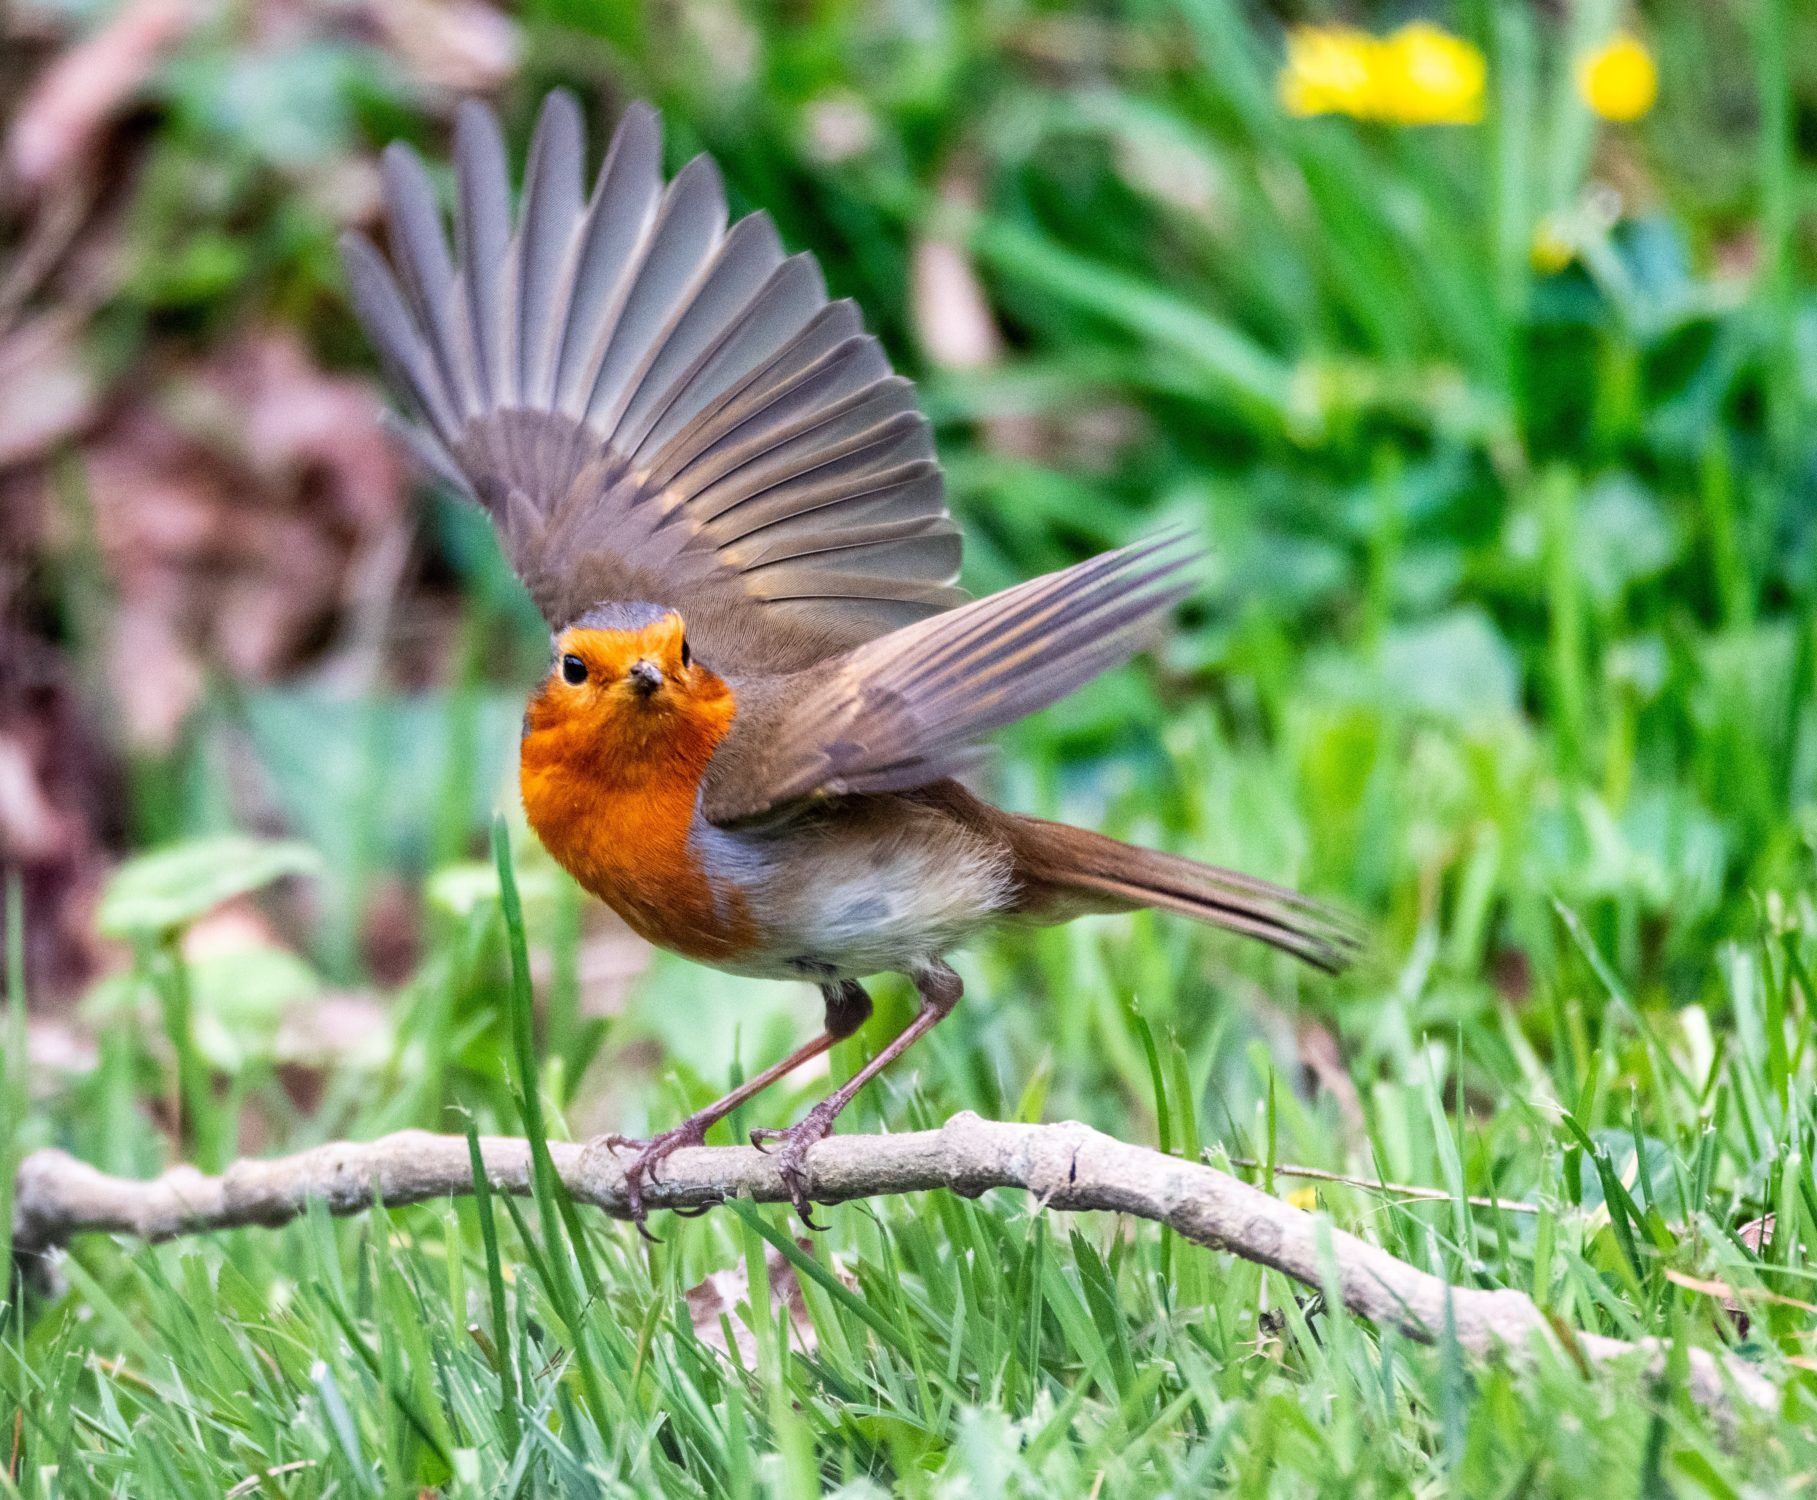 Photograph of a Robin perched on a twig on the grass, with its wings outstretched and looking at the camera.